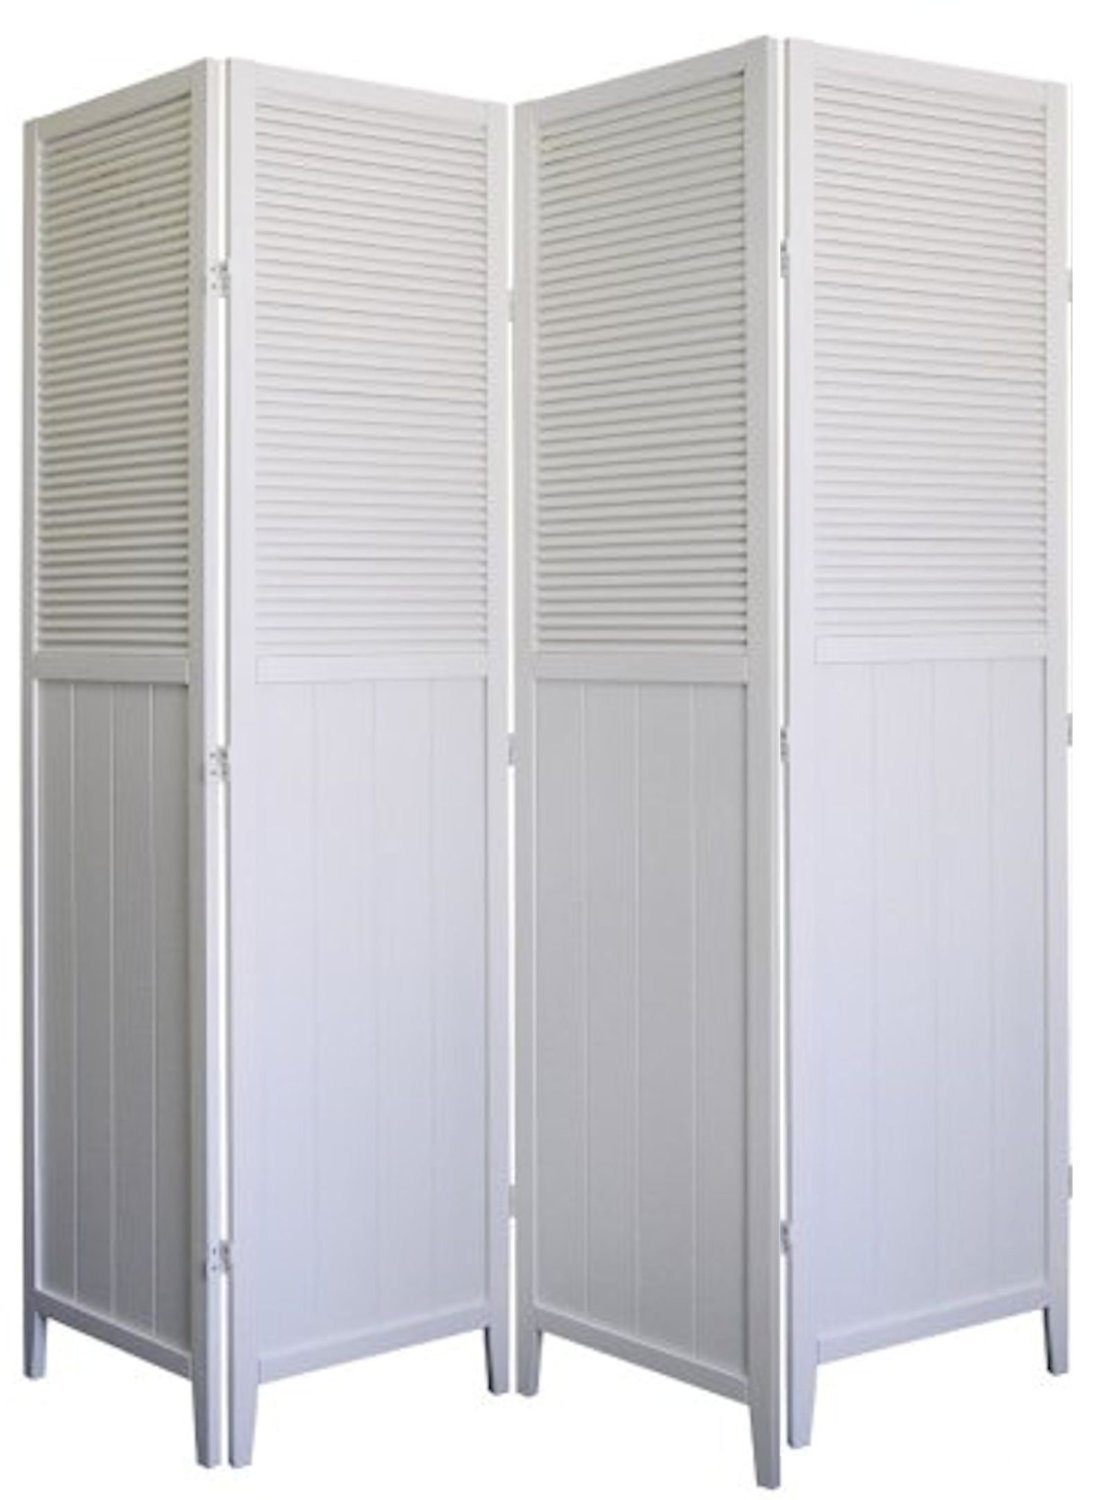 4 Panel Wood Room Divider - White by SQUARE FURNITURE